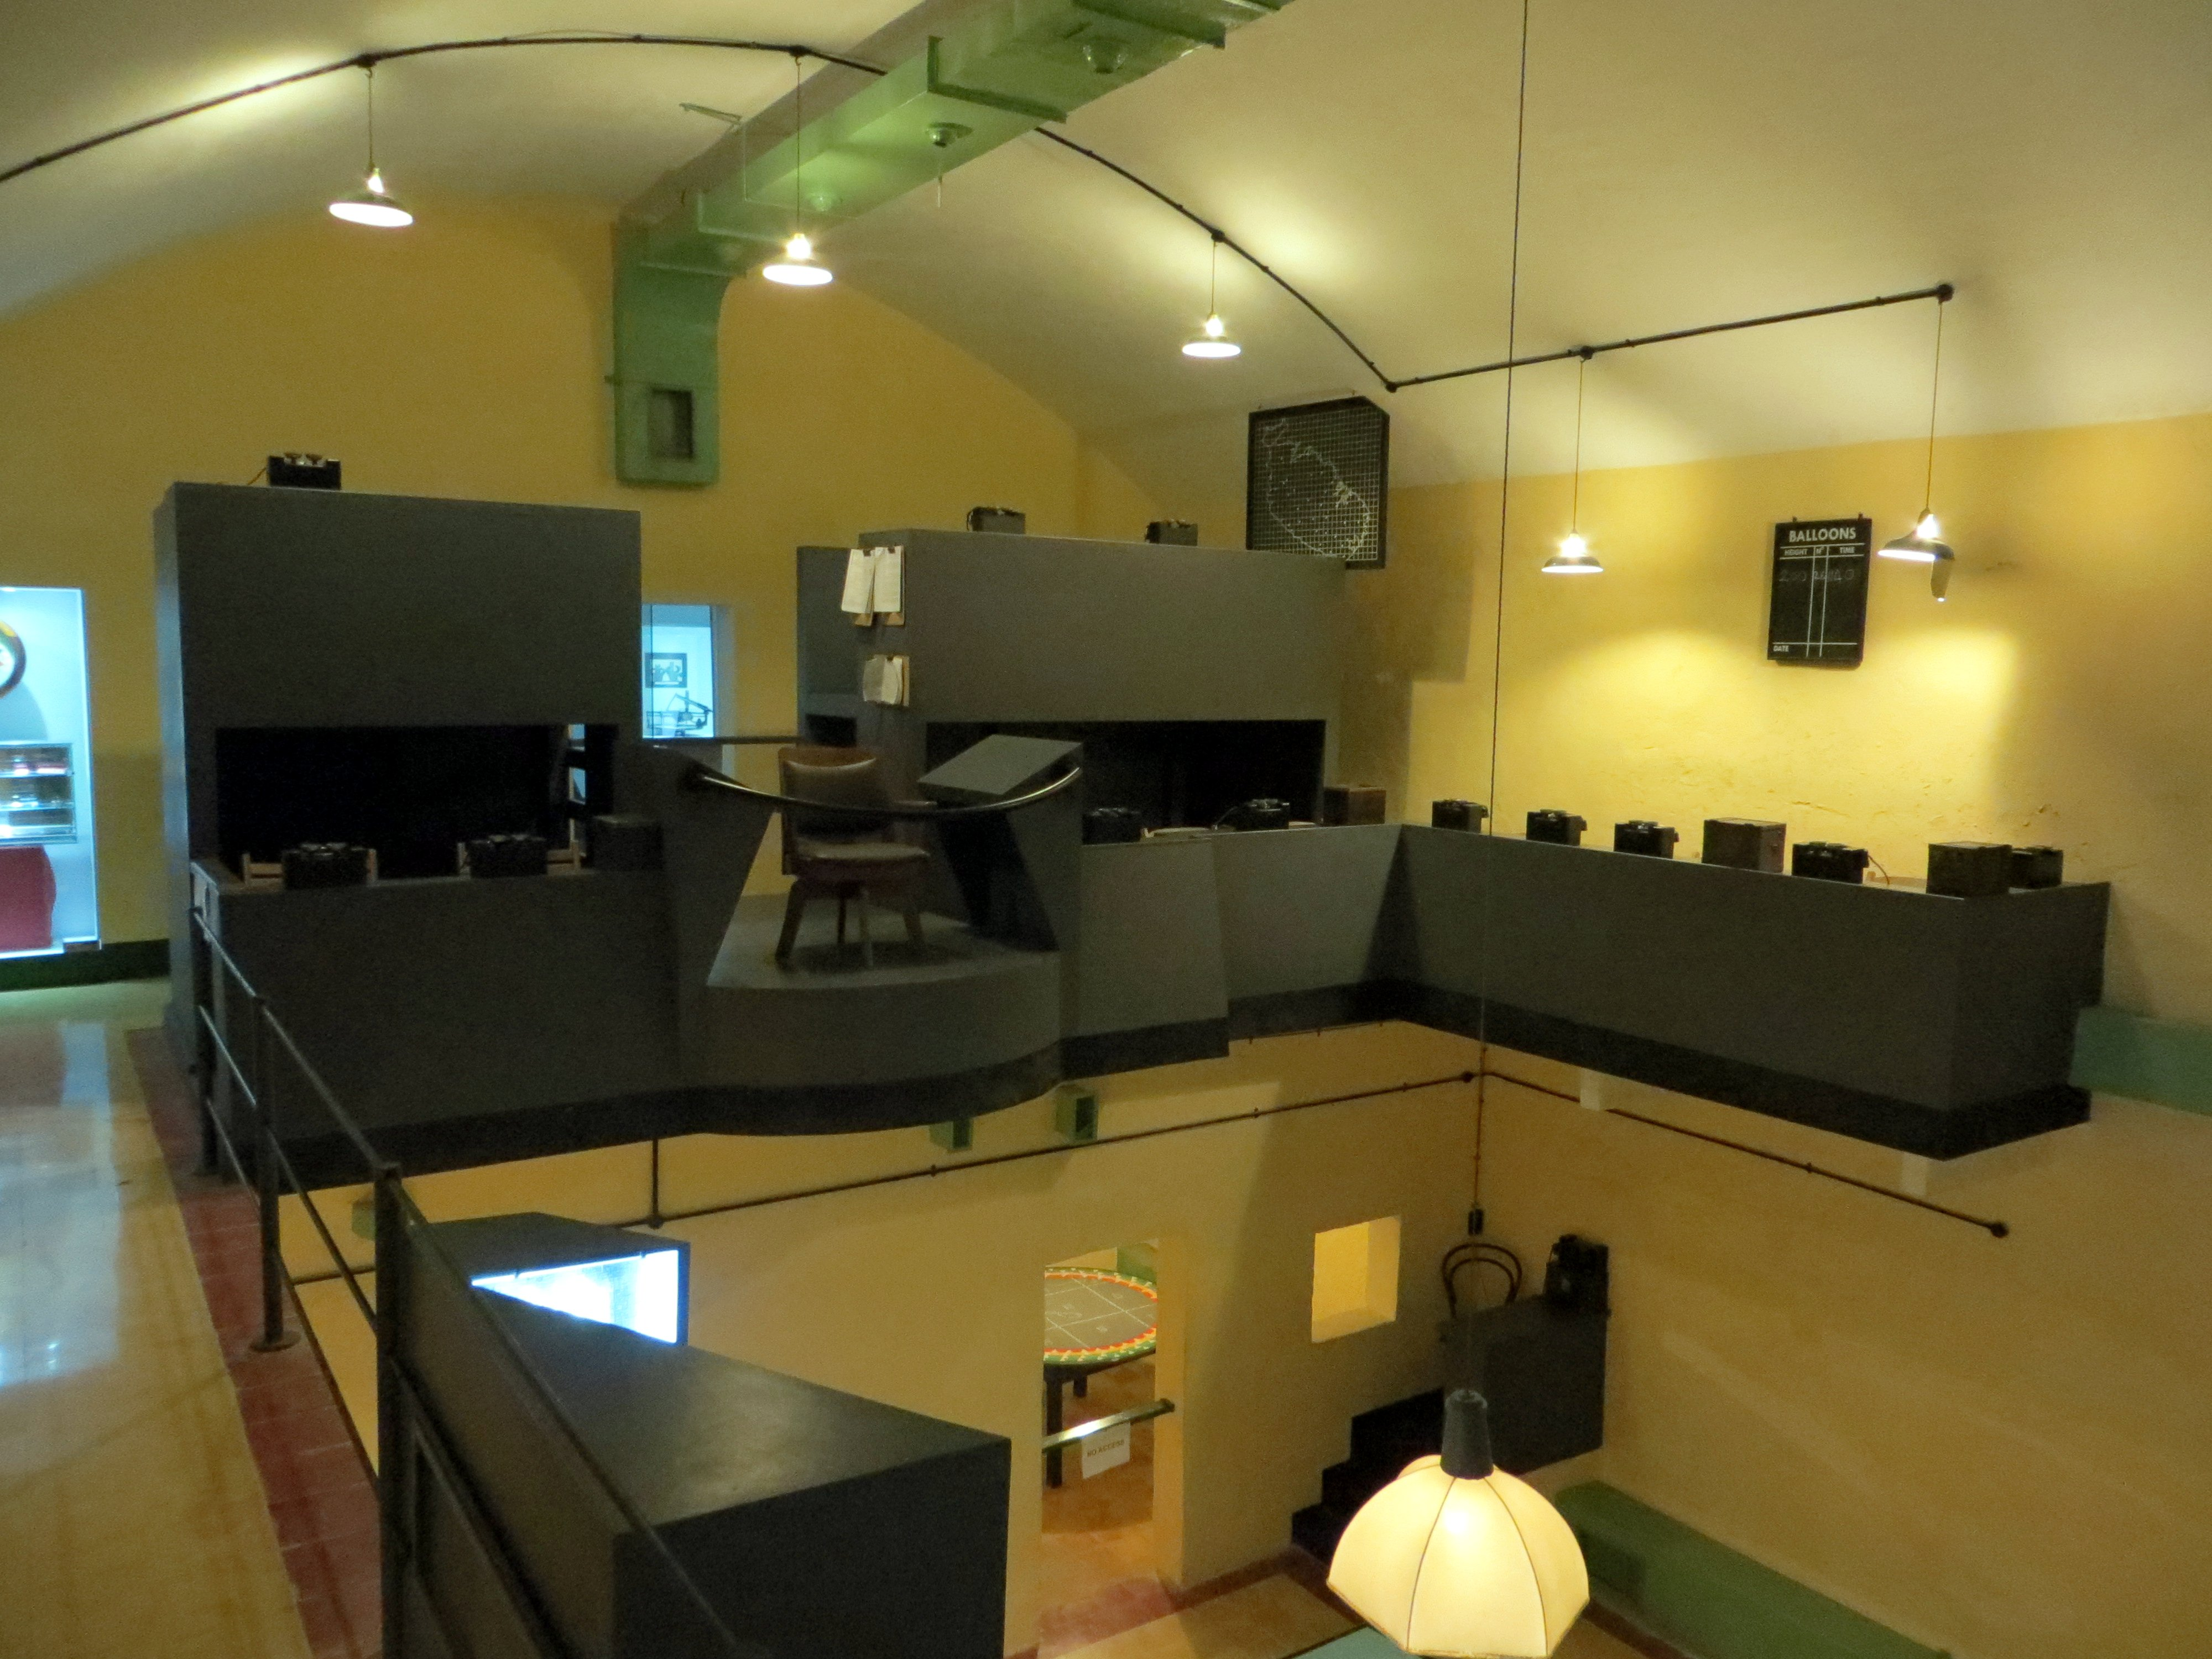 RAF Sector Fighter Control Room Gallery